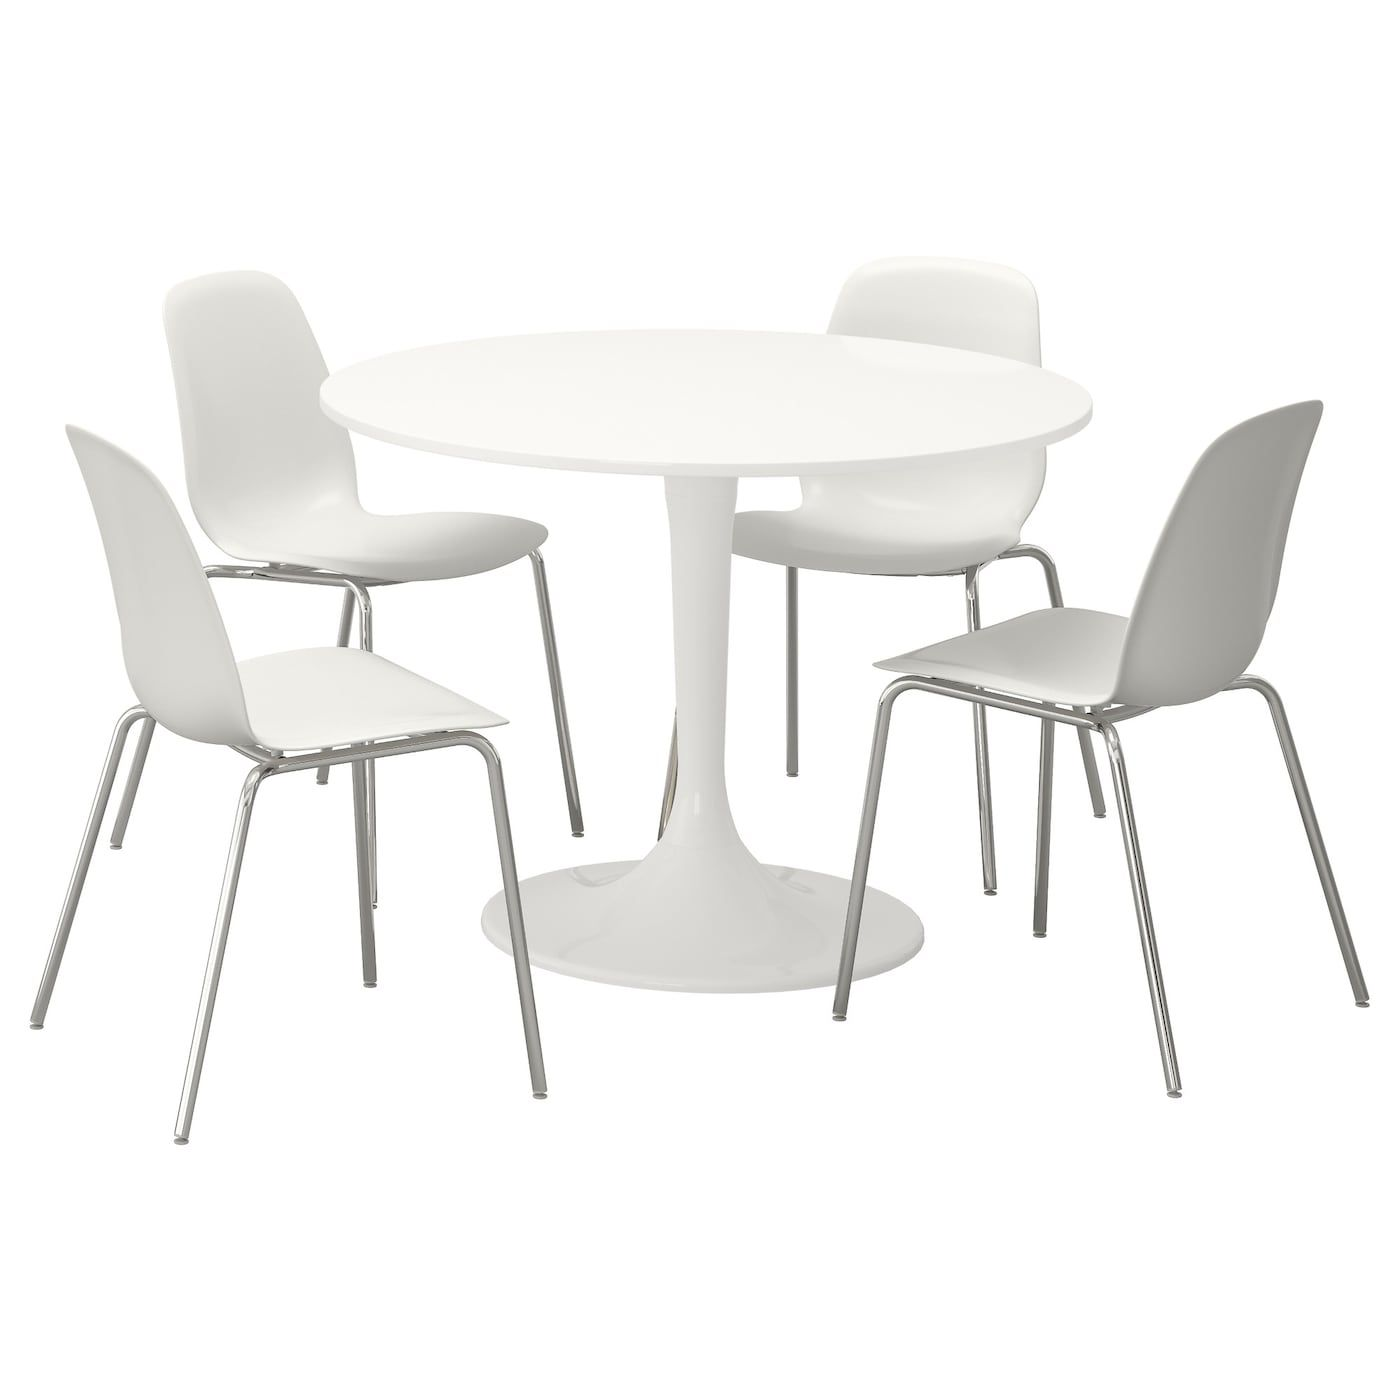 Docksta Leifarne Table And 4 Chairs White White Height 29 3 8 Diameter 41 3 8 Shop Here Ikea En 2020 Ensemble Table Et Chaise Table Ikea Table Et Chaises